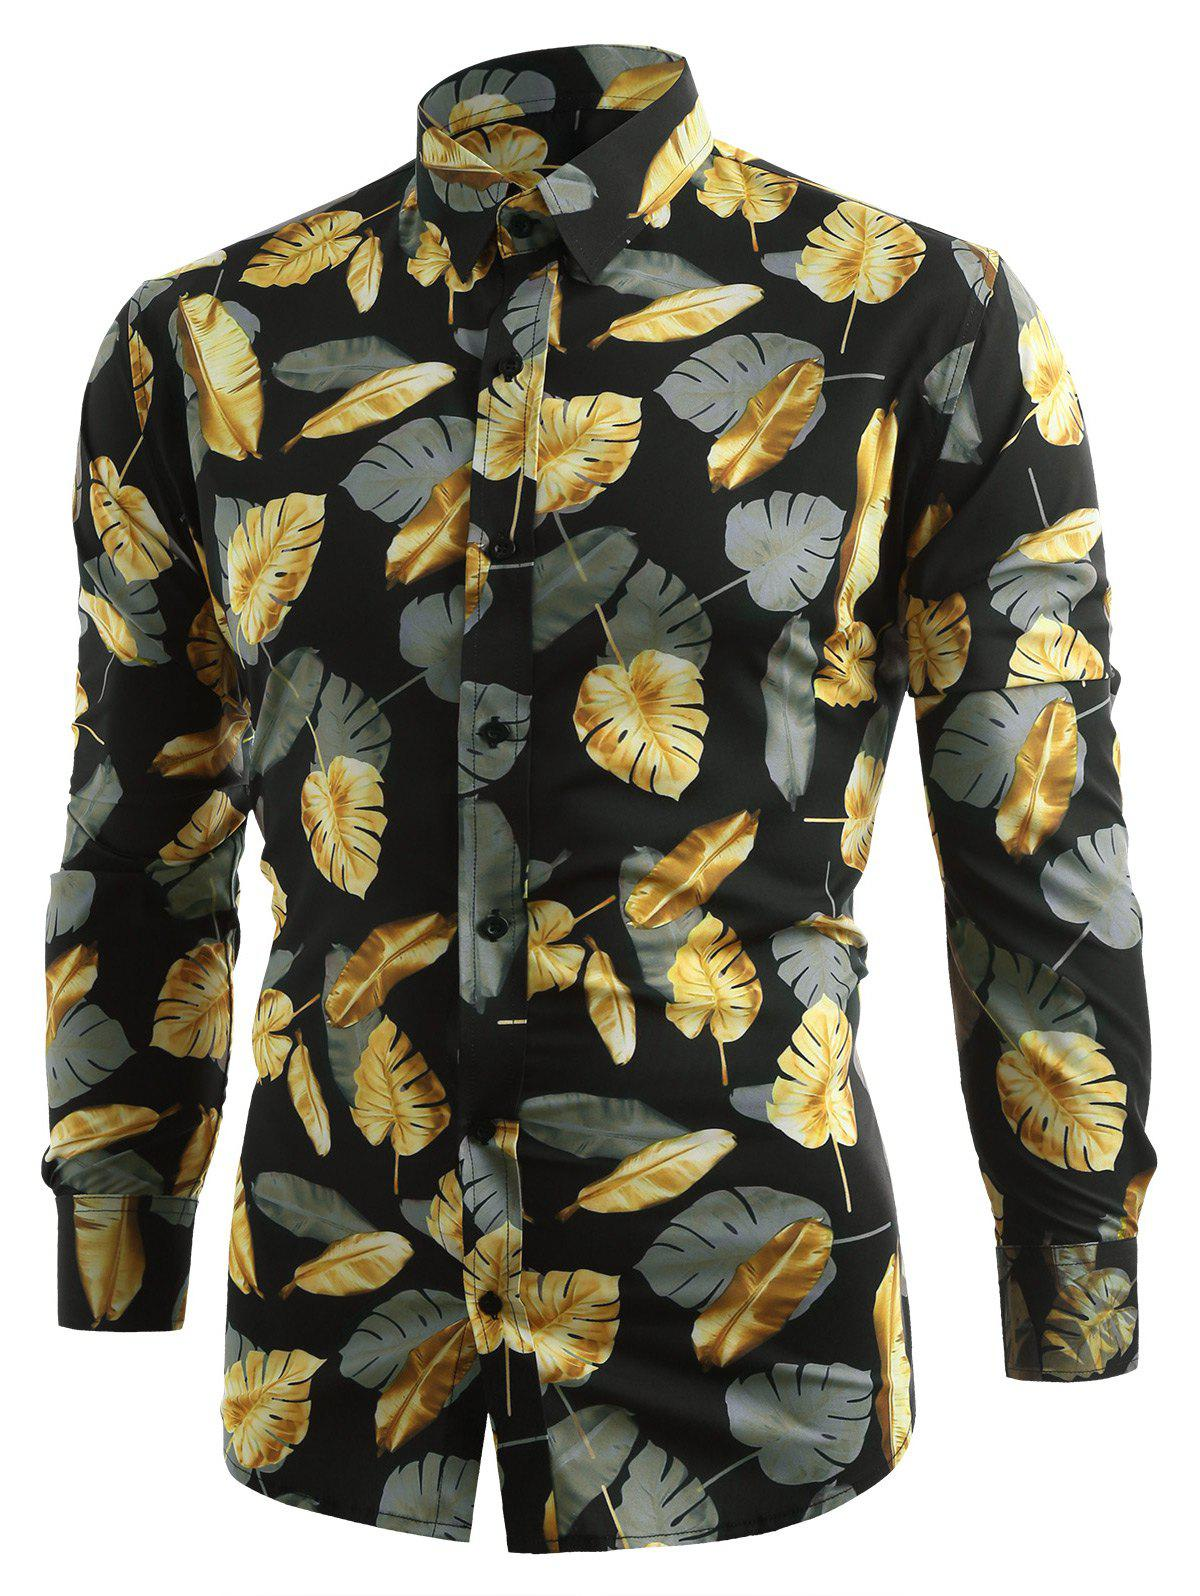 Allover Golden Leaves Print Button Up Shirt - BLACK XL